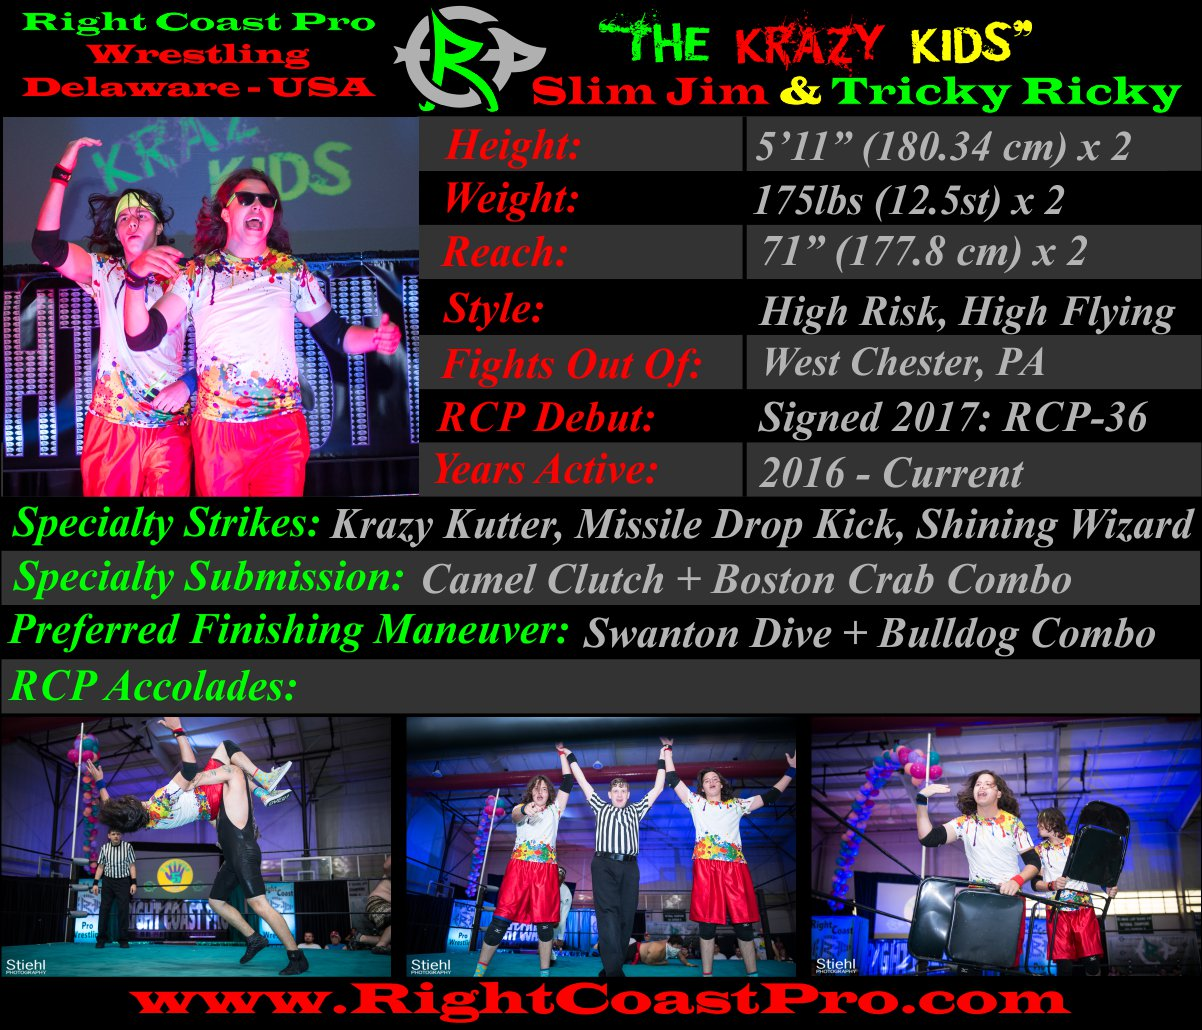 KrazyKids Profiles RightCoastPro Wrestling Delaware